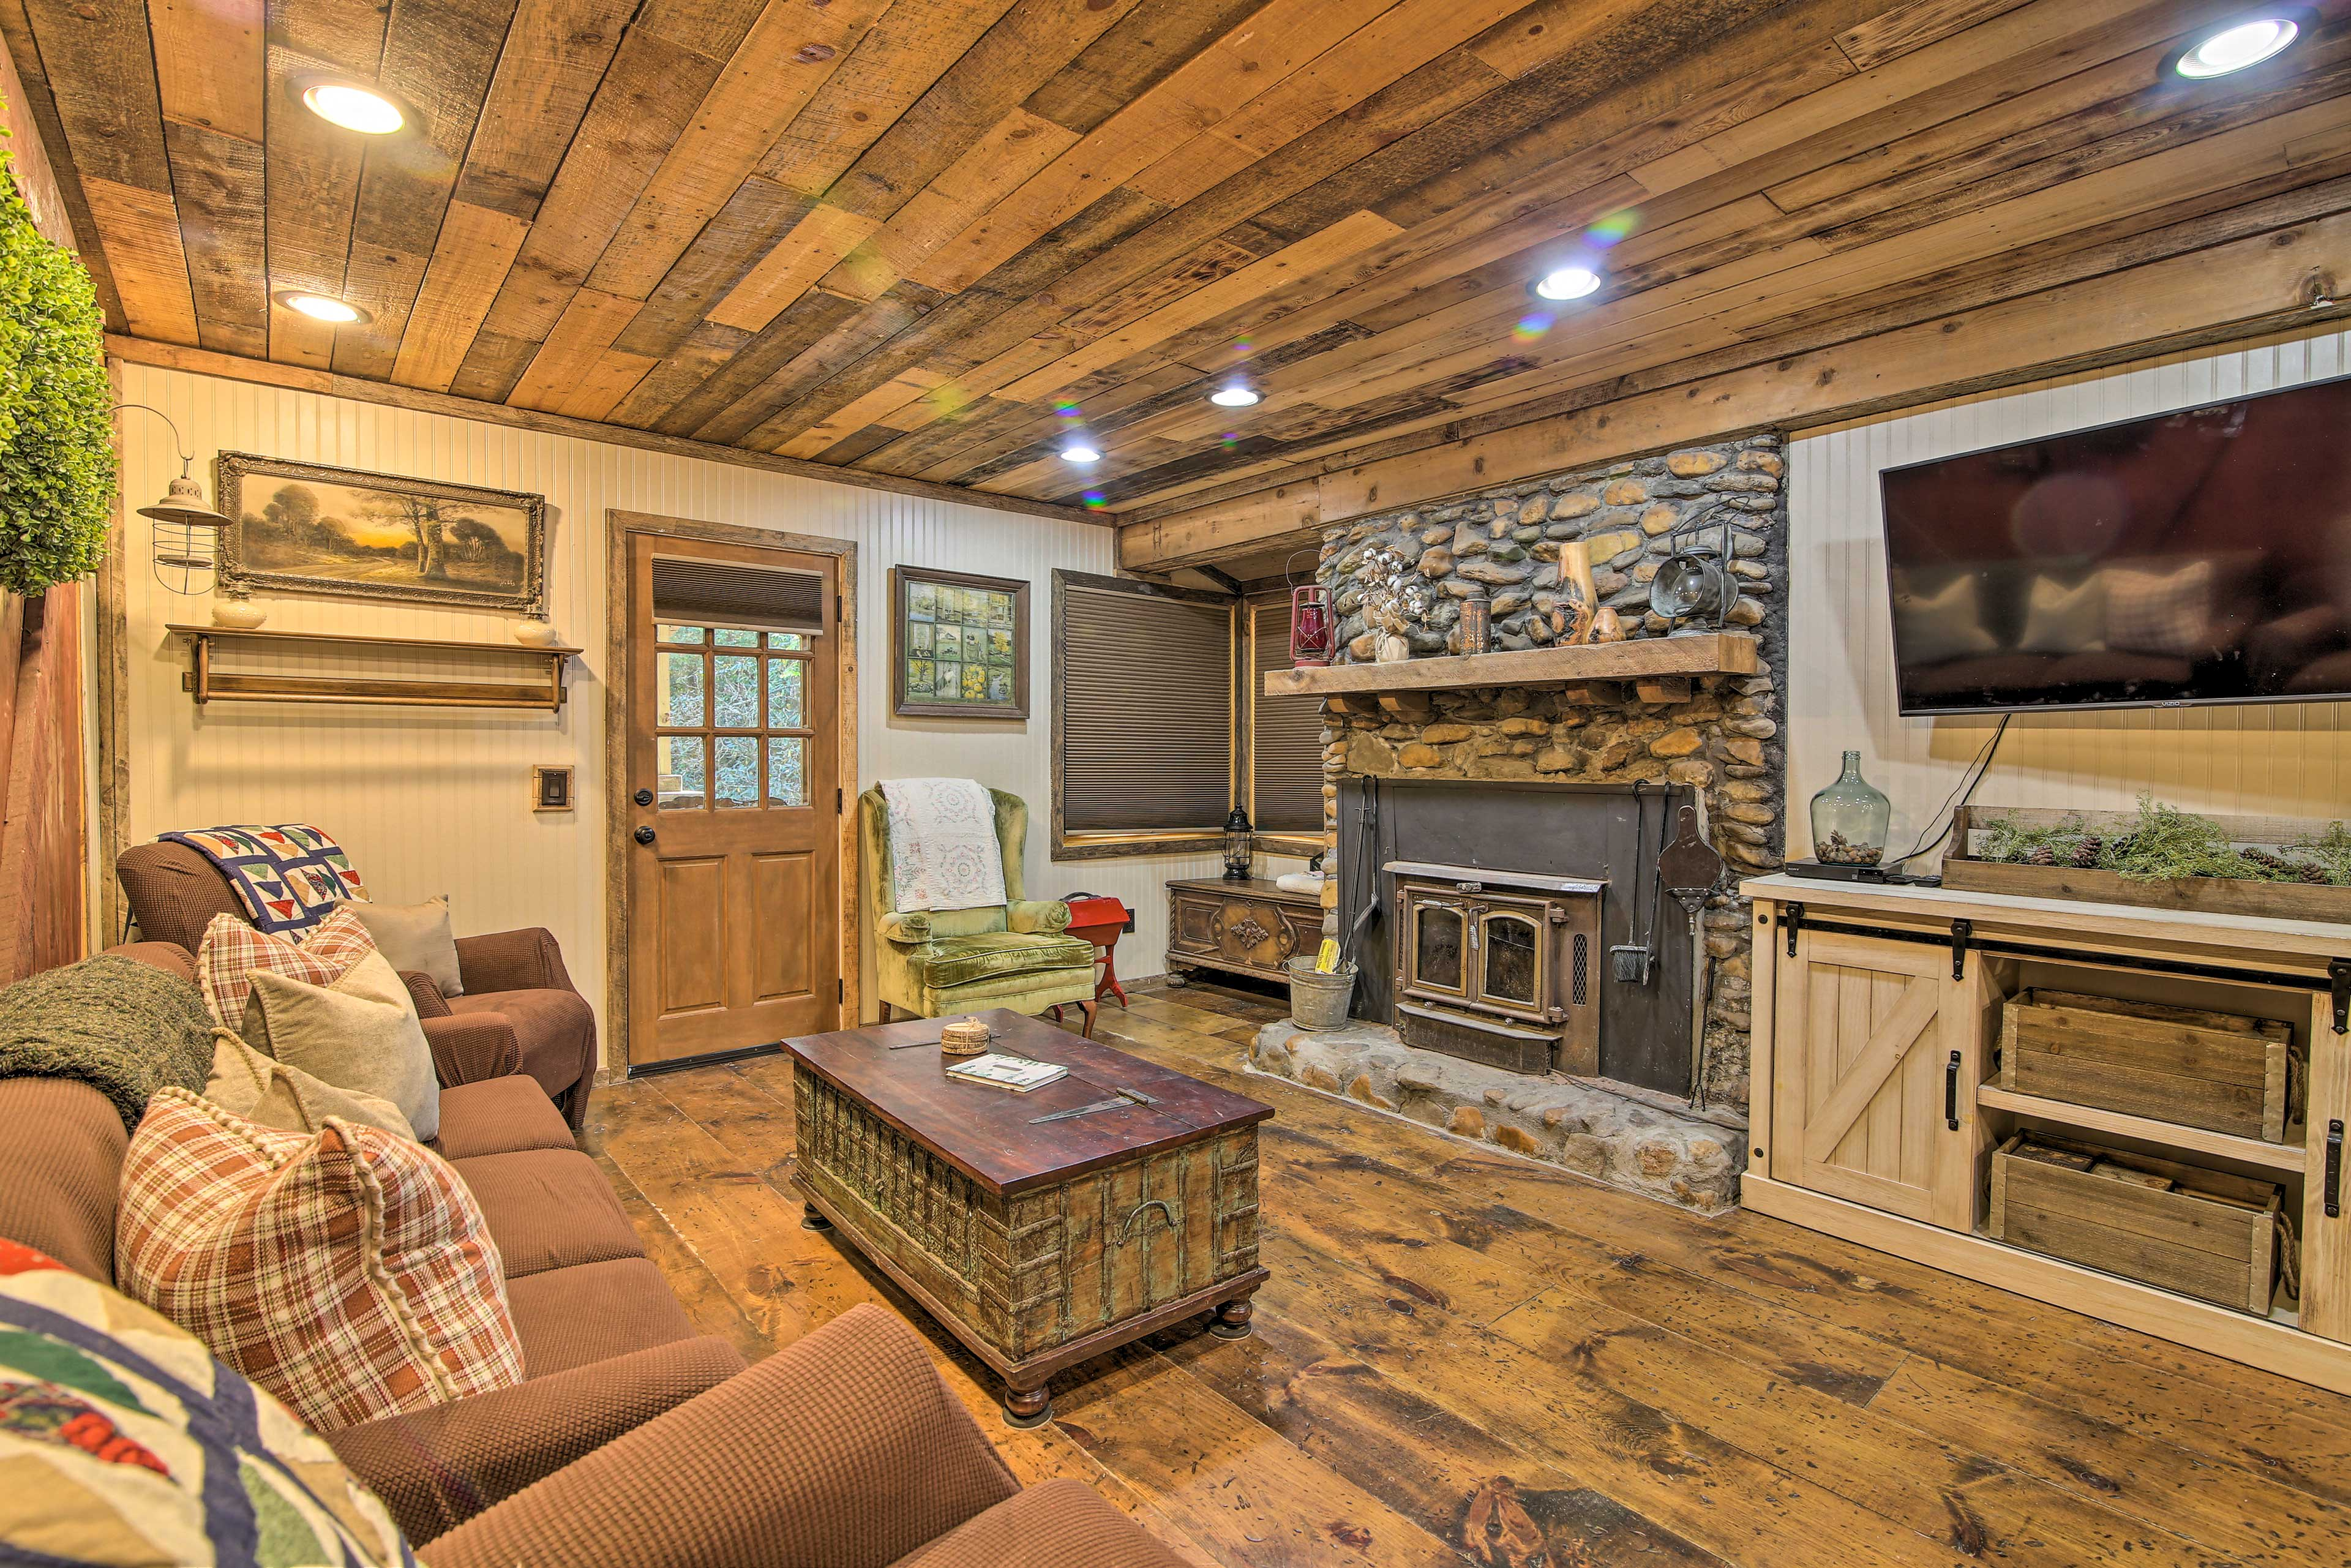 Spend quality time around the wood-burning fireplace with a movie or TV show.